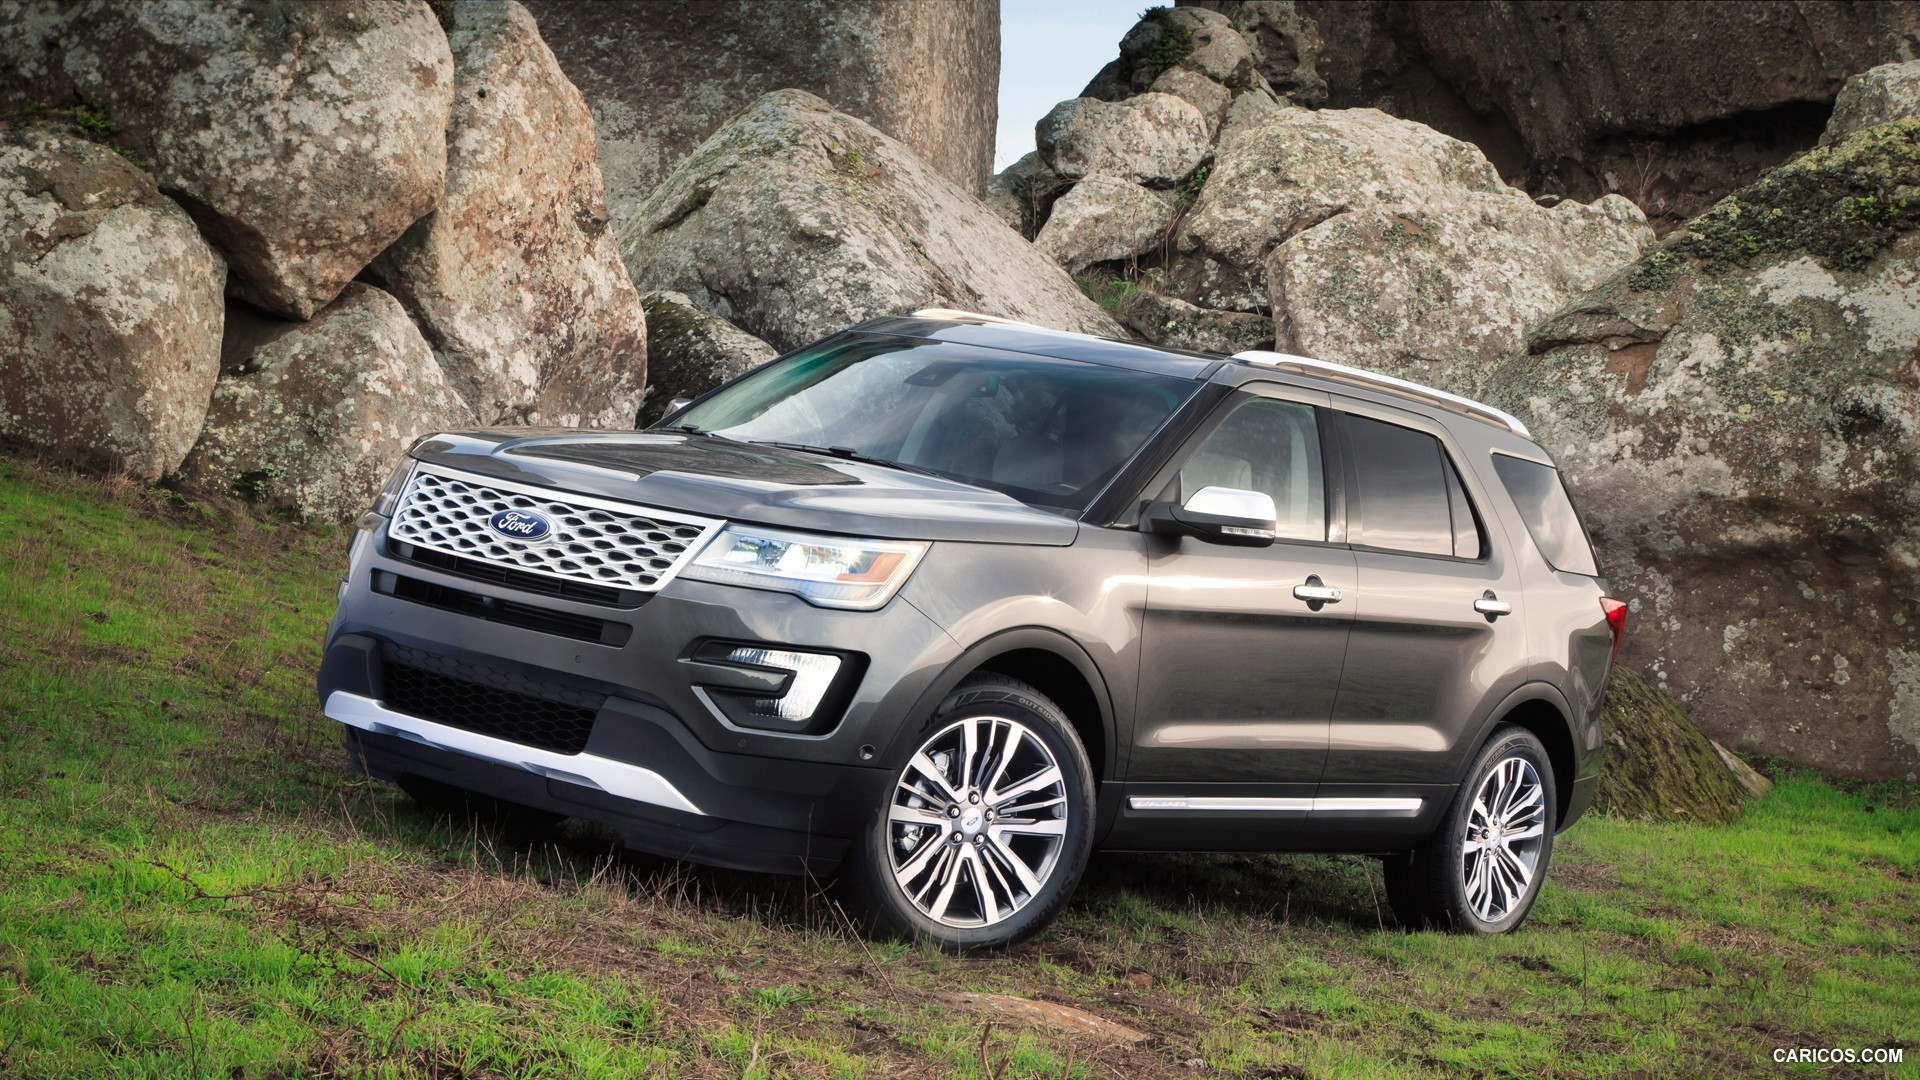 1920x1080 - Ford Explorer Wallpapers 21